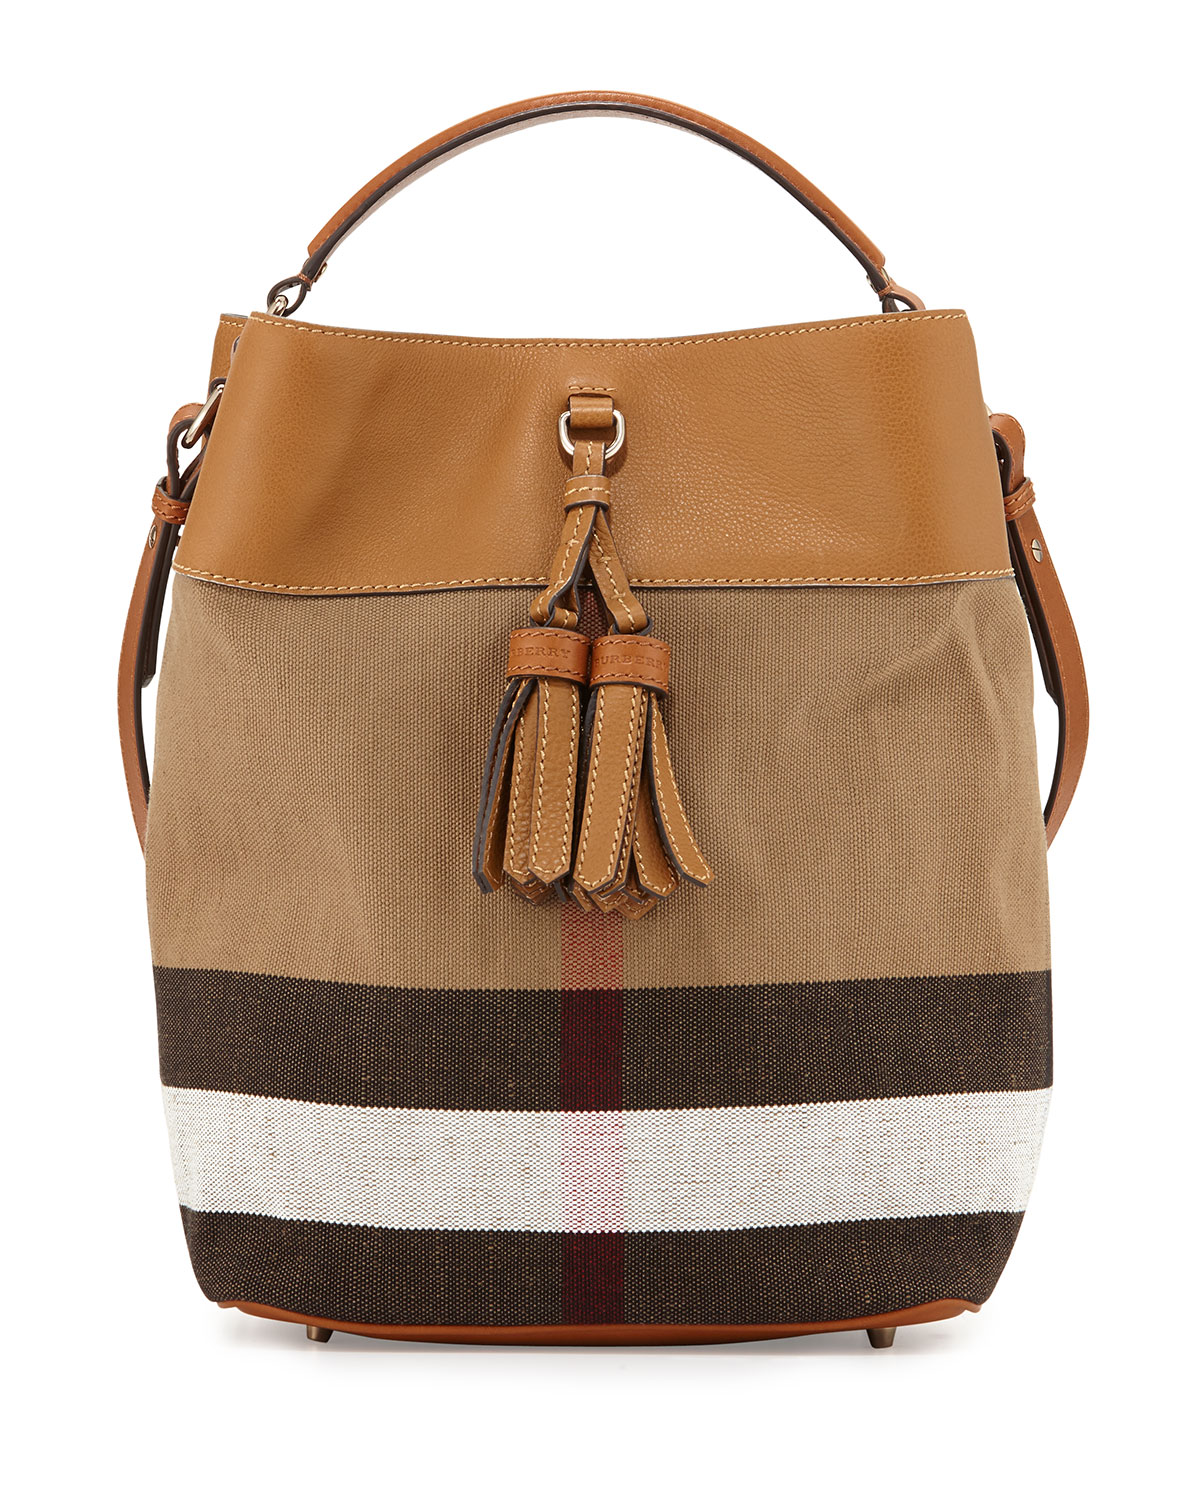 Burberry Asby Check Canvas Bucket Bag ff0a08bf0ad84